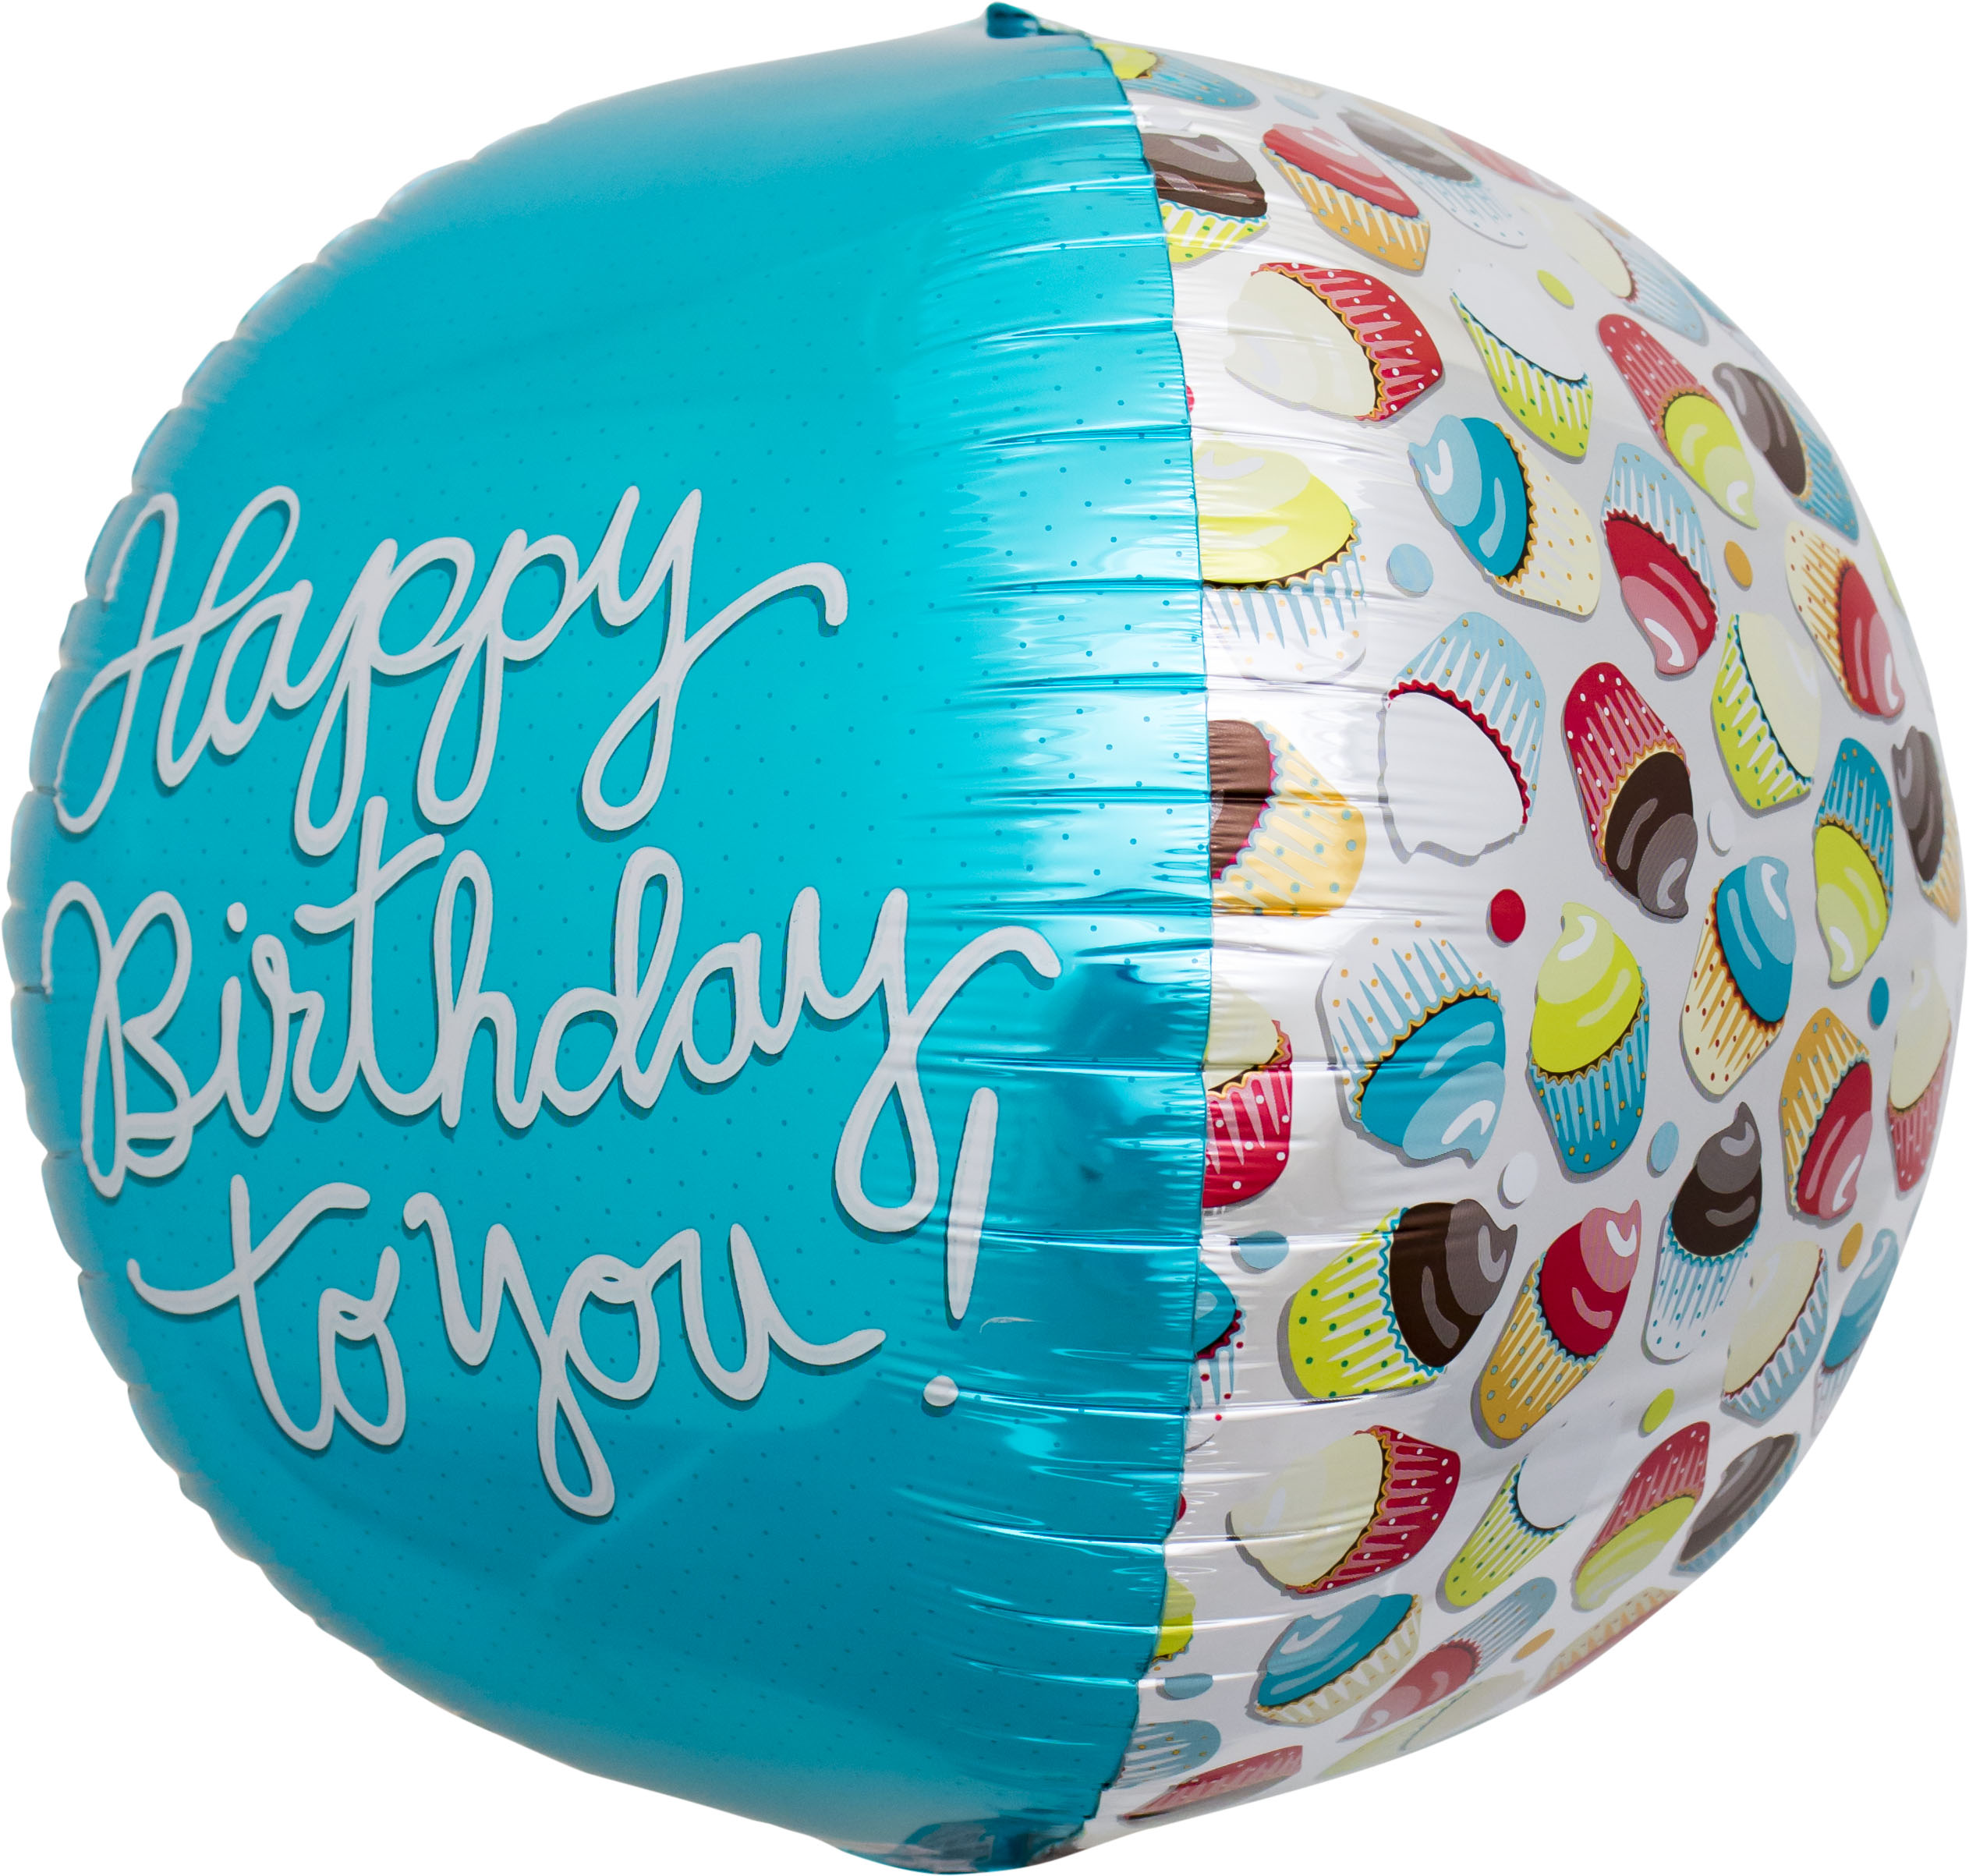 "17"" H.B. to You Cupcake Sphere"